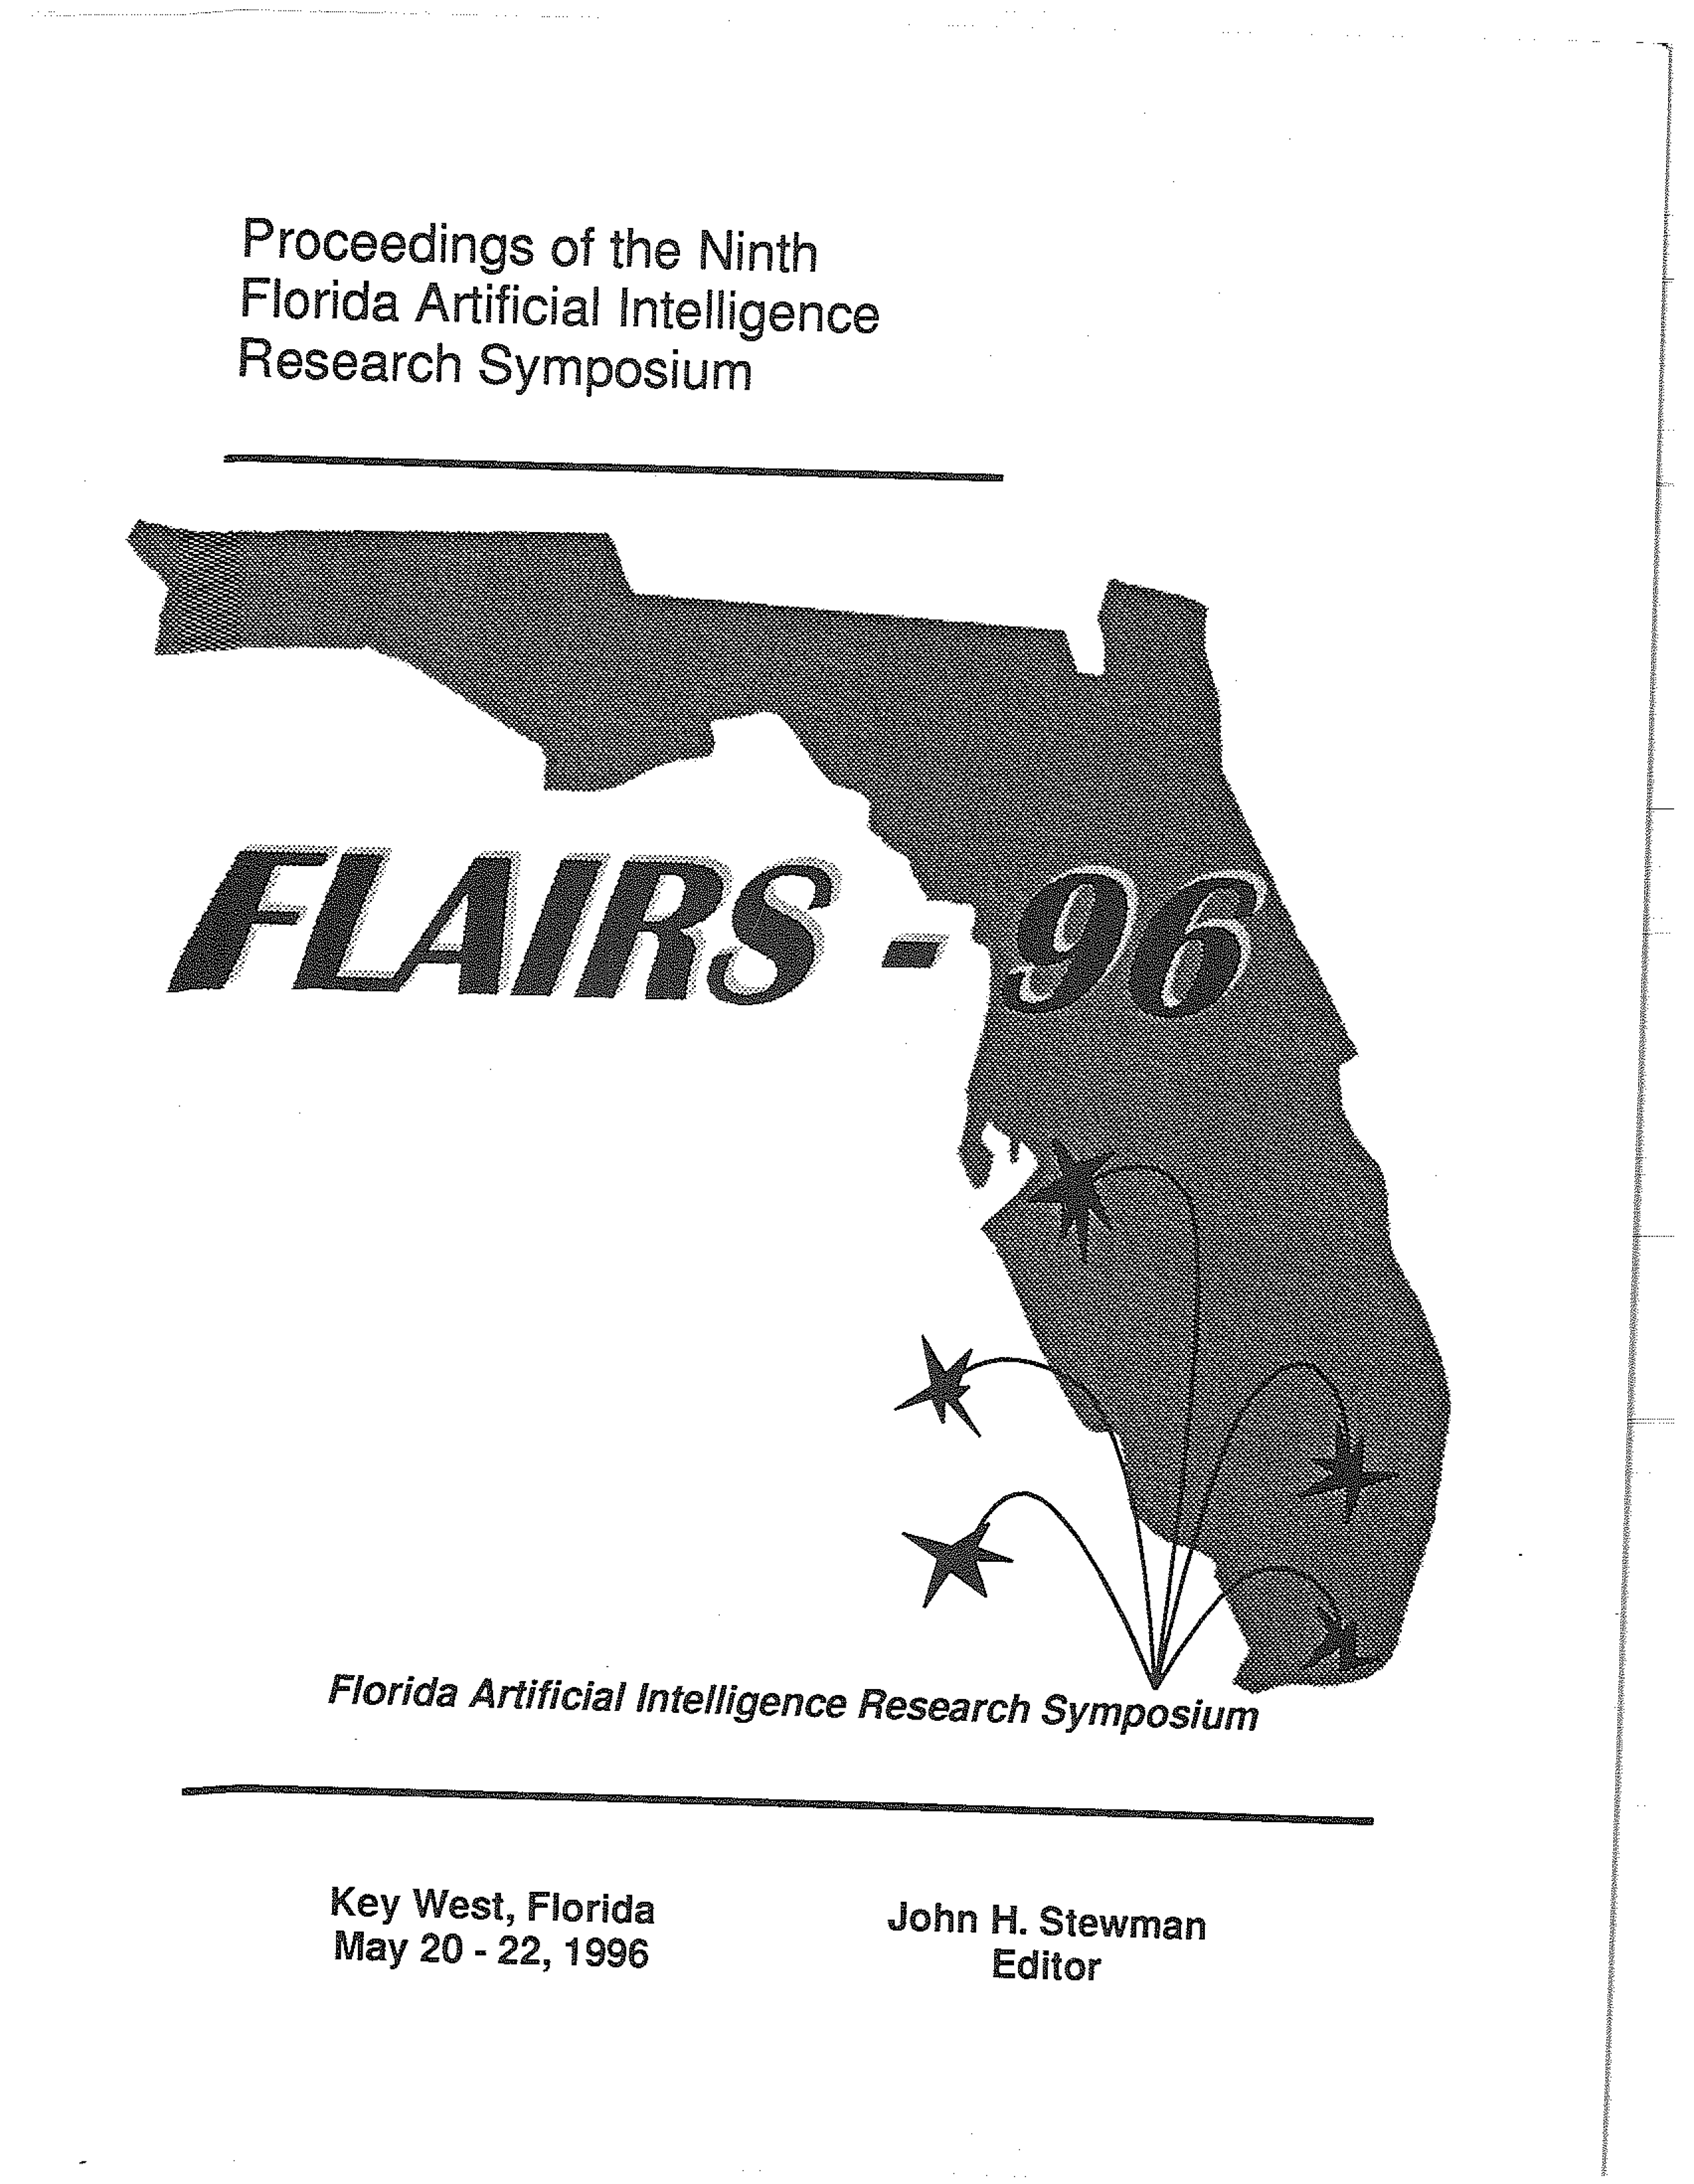 Proceedings of FLAIRS-9, cover